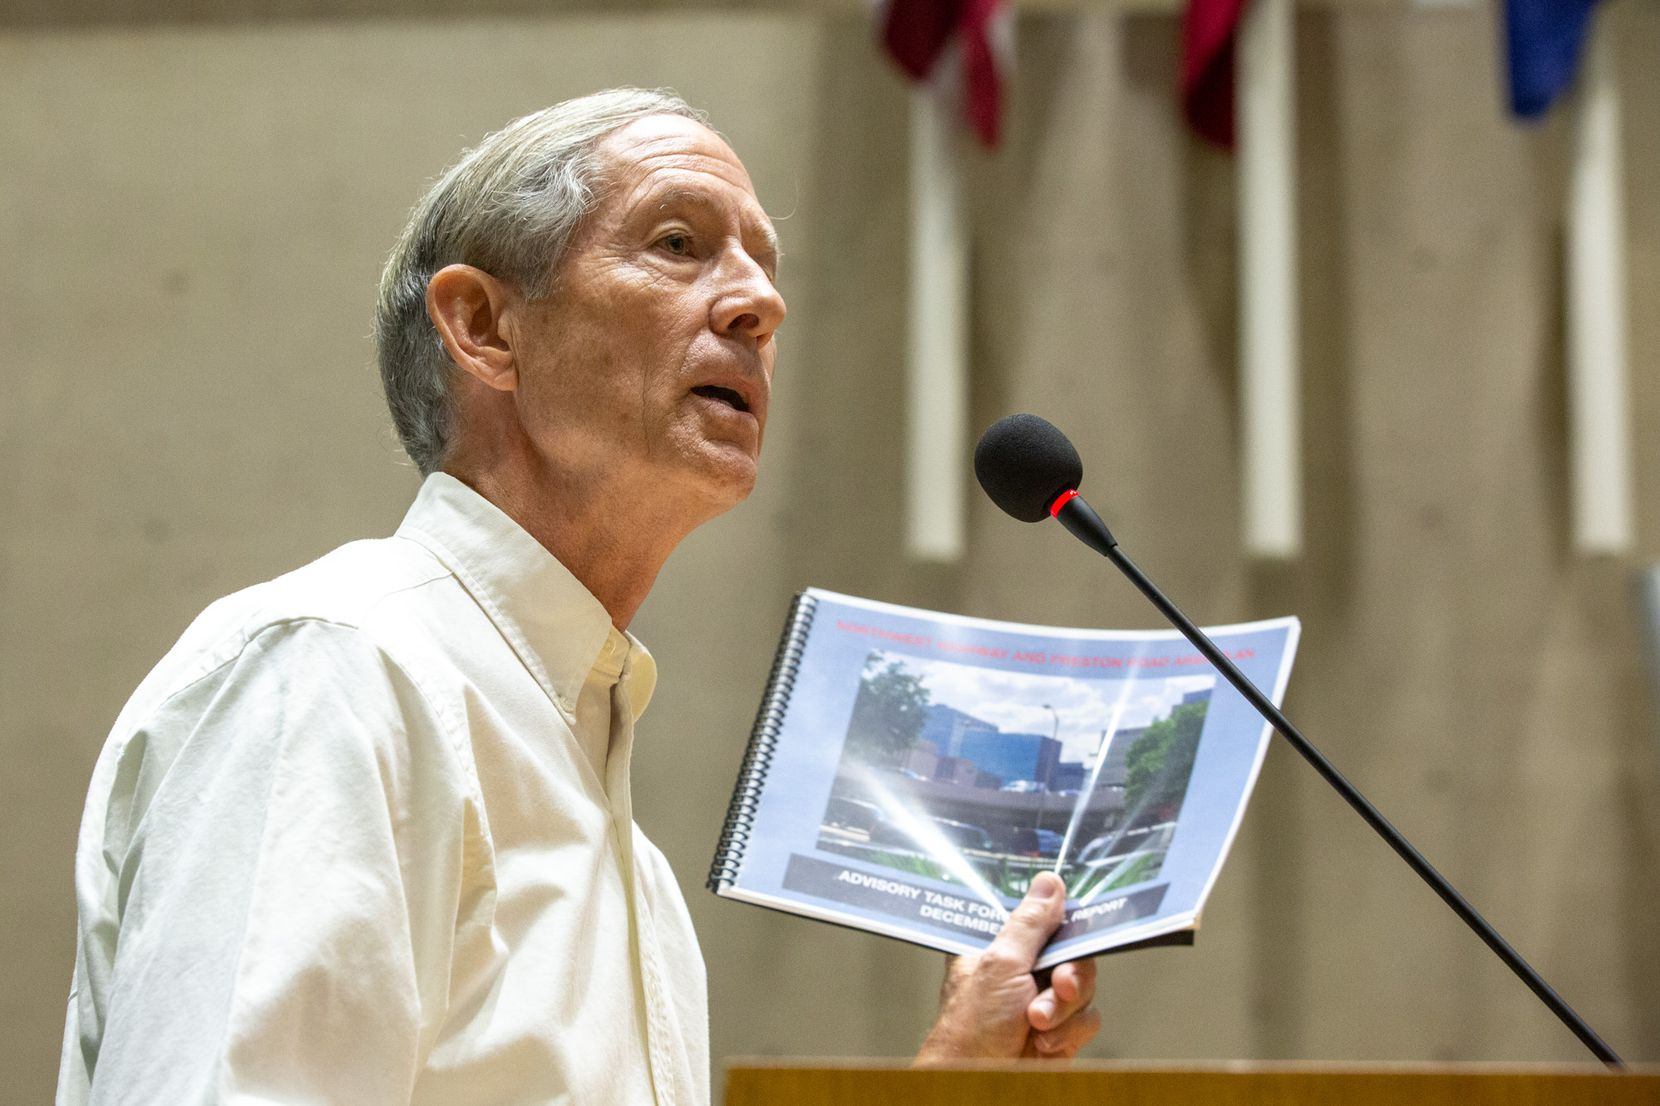 Steve Dawson speaks in opposition to Planned Development 15 at the city council meeting on Wednesday, Sep. 11, 2019, at Dallas City Hall.